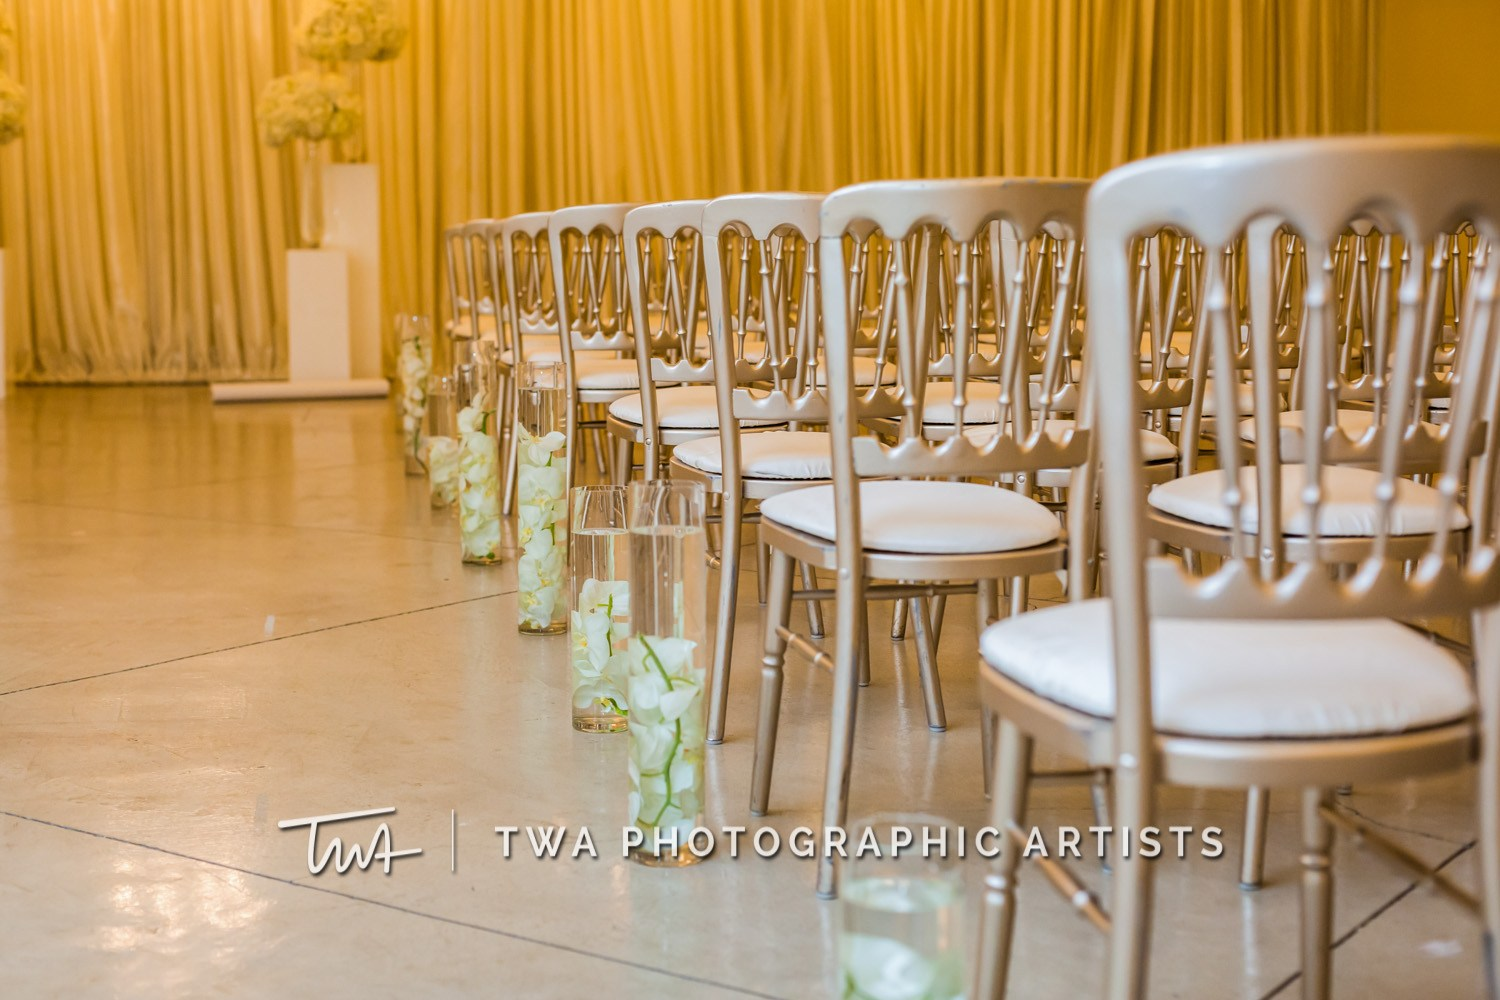 Chicago-Wedding-Photographer-TWA-Photographic-Artists-Stan-Mansion_Ityavyar_Oakley_MJ-0206-1